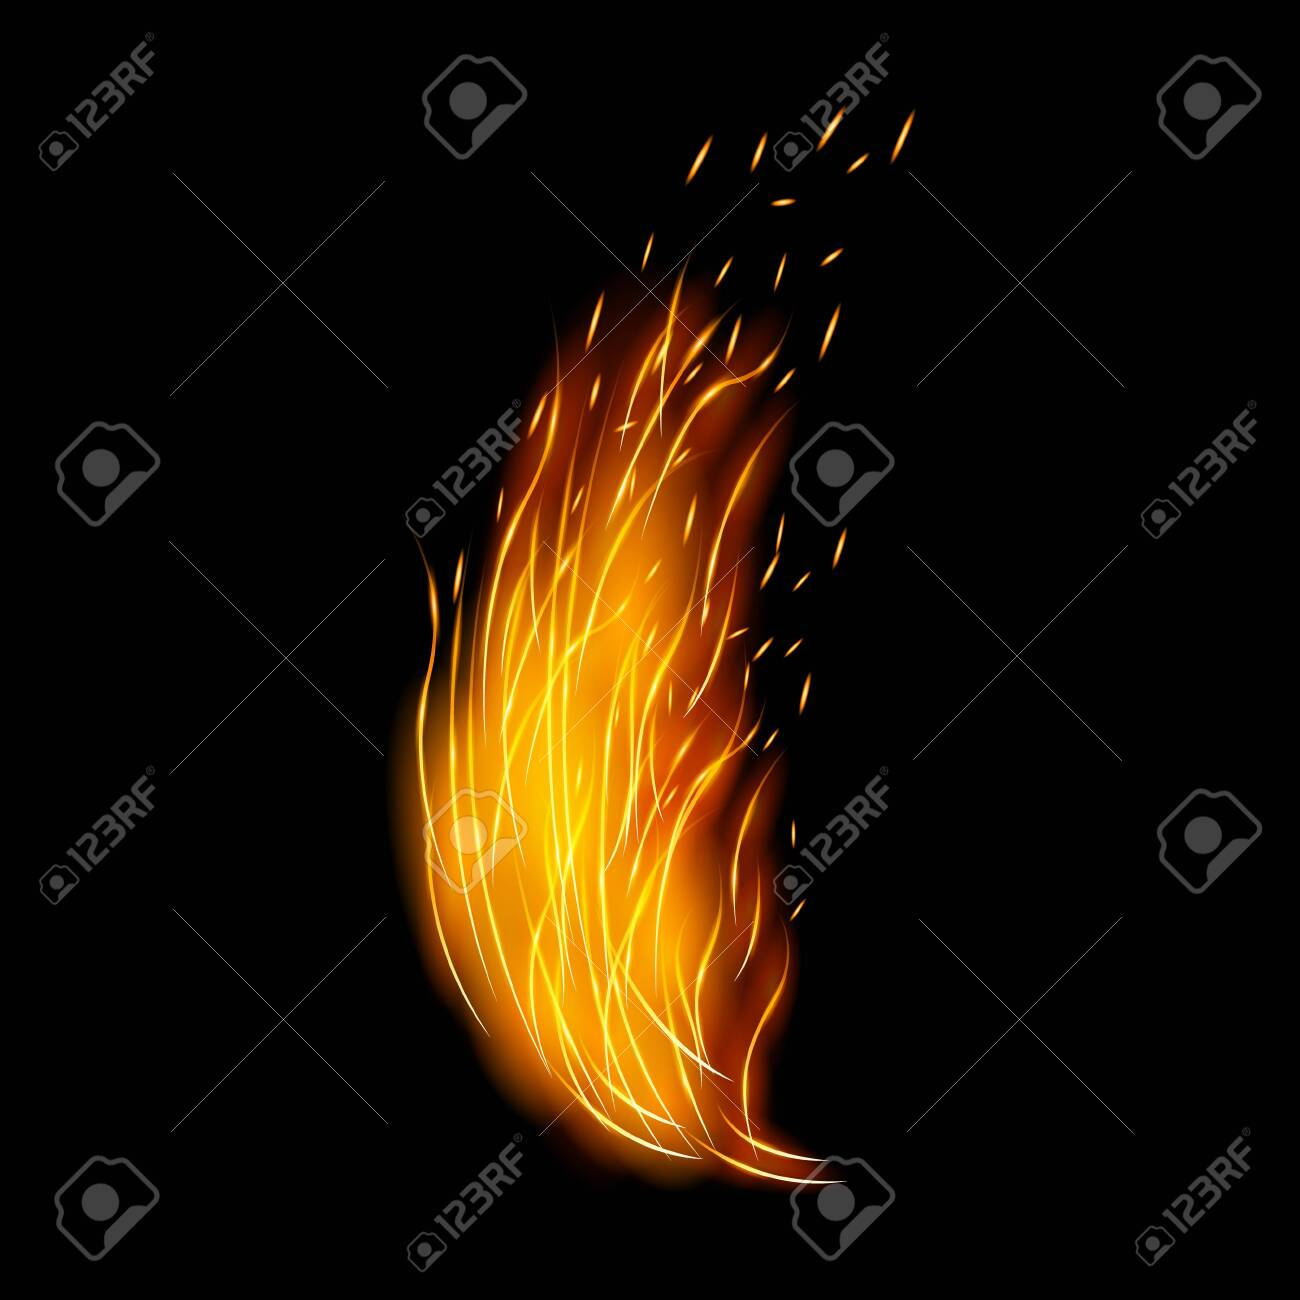 Flame vector icon.Realistic vector icon isolated on white background flame. - 143410941